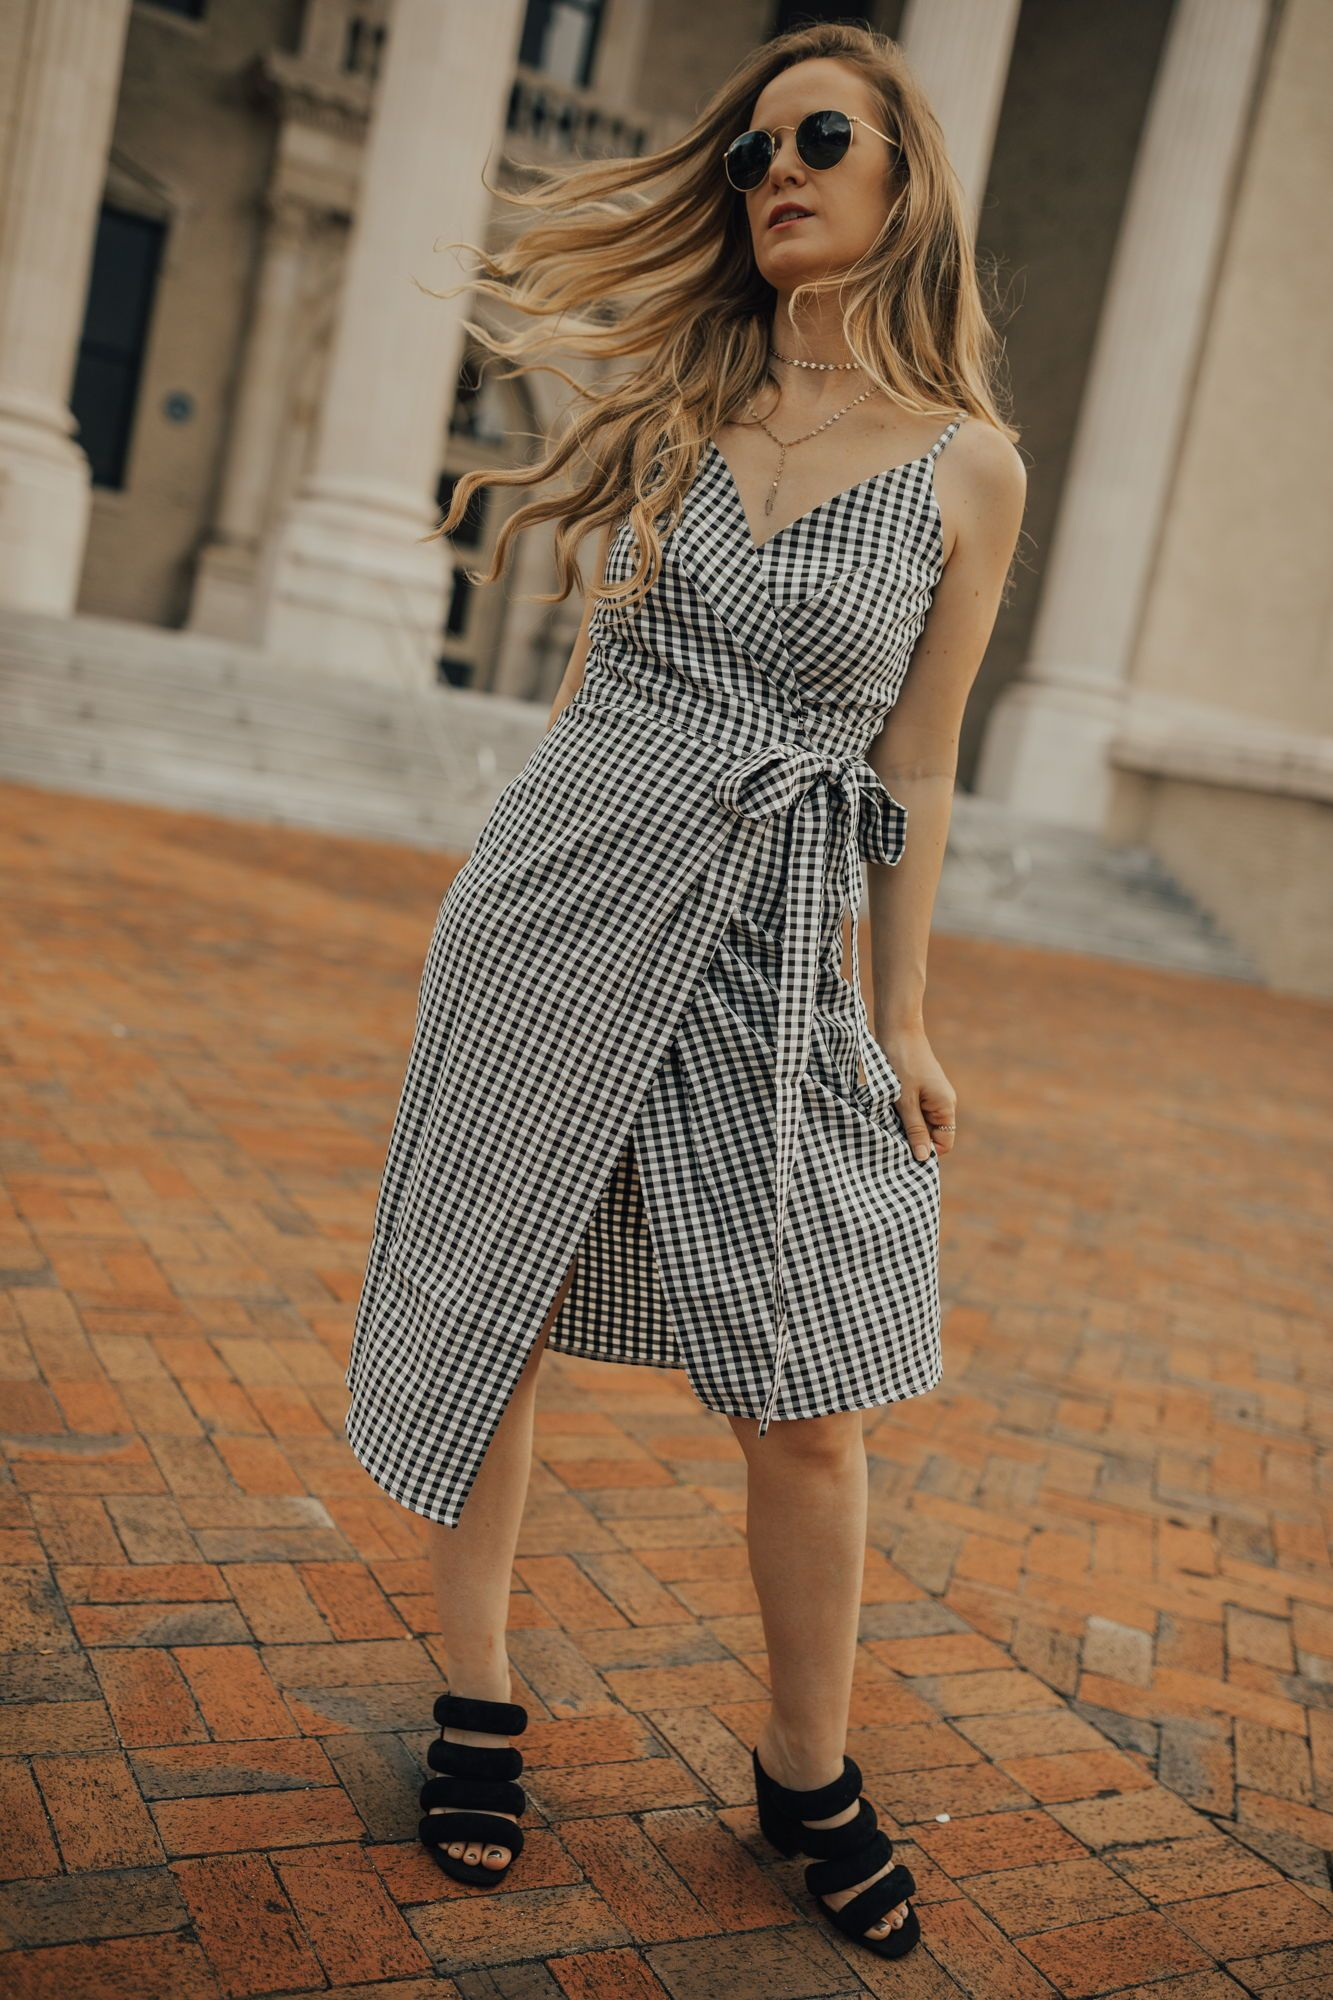 c46cb759581 Cute date night look with gingham wrap dress